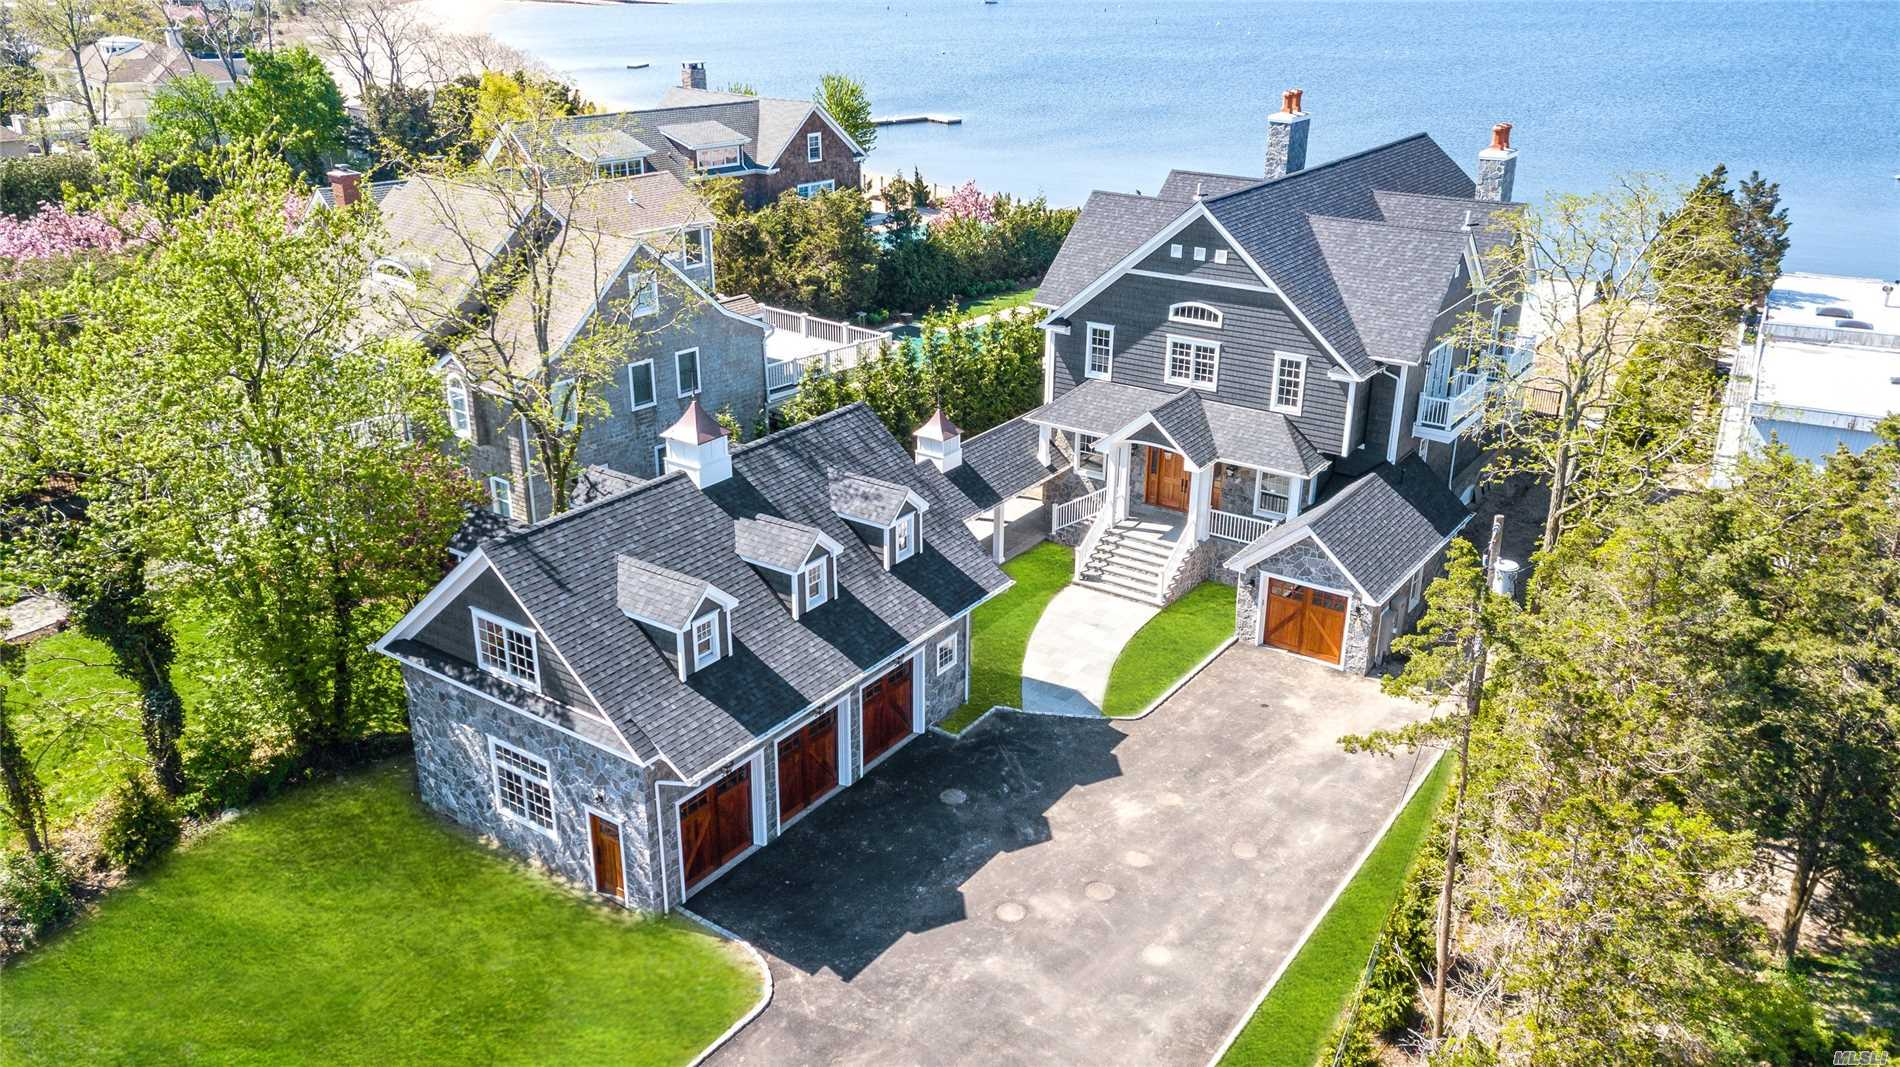 New Construction. Stunning Waterfront Colonial On Sought After Bay Side Of Asharoken With In-Ground Pool & Dock. Open Floor Plan W/10 Ft Ceilings. Designer Kitchen & Baths. Radiant Heat.